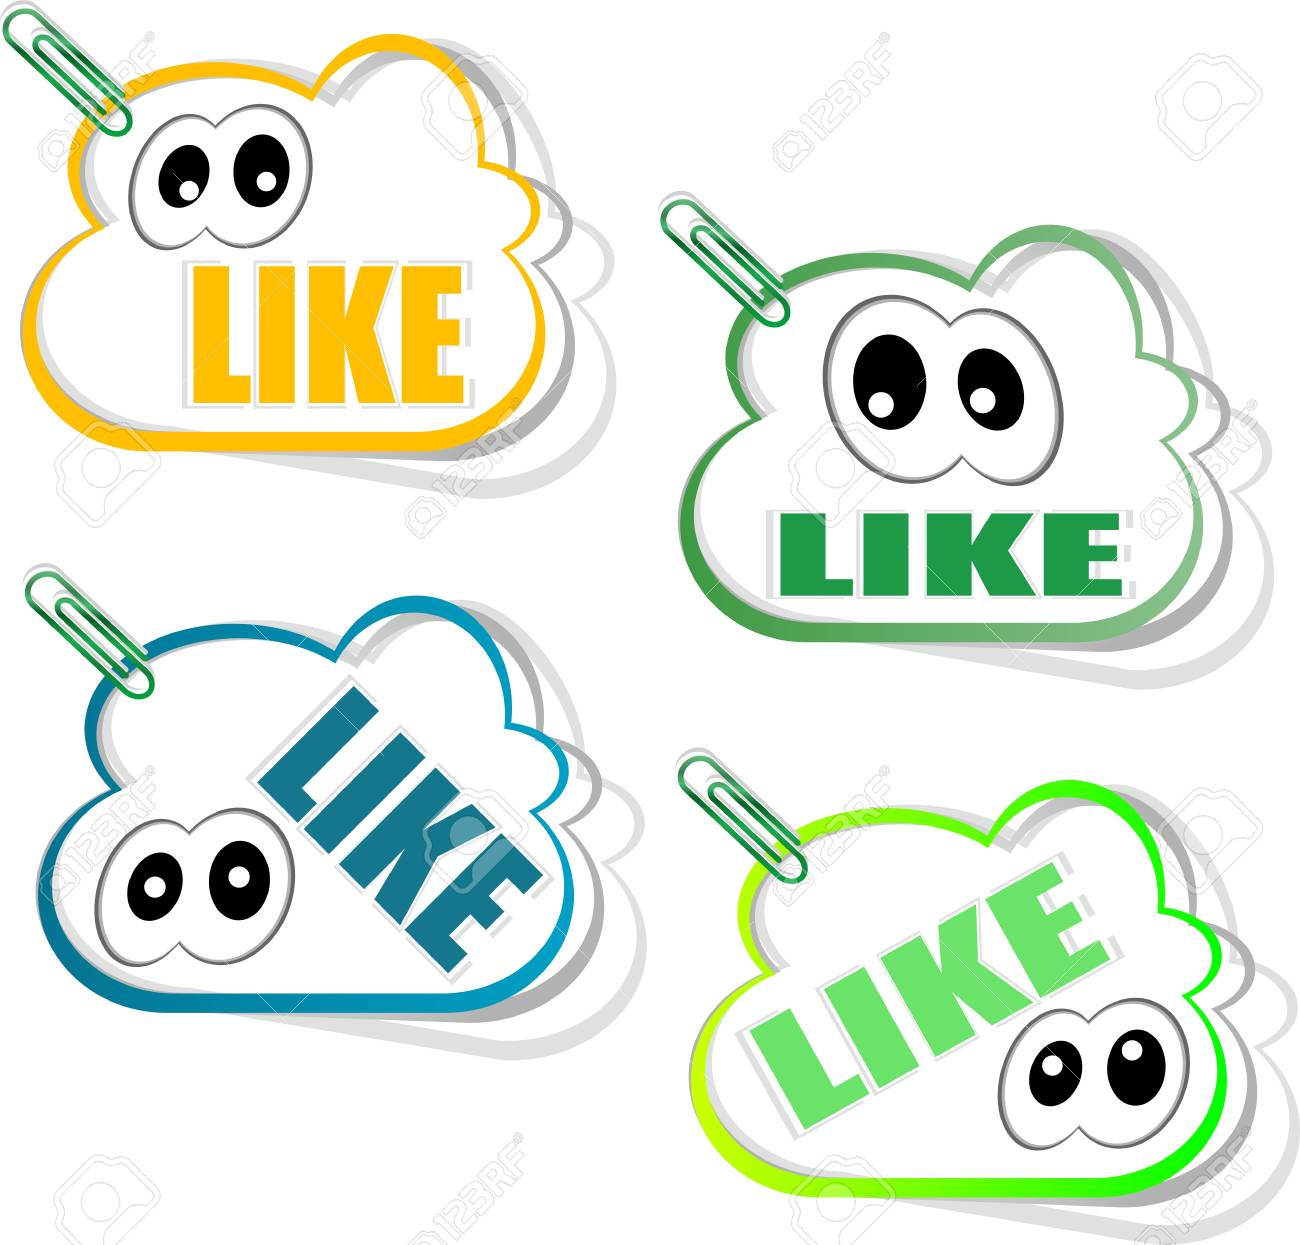 Set social media sticker with like icon and eyes, isolated on white Stock Photo - 17654600